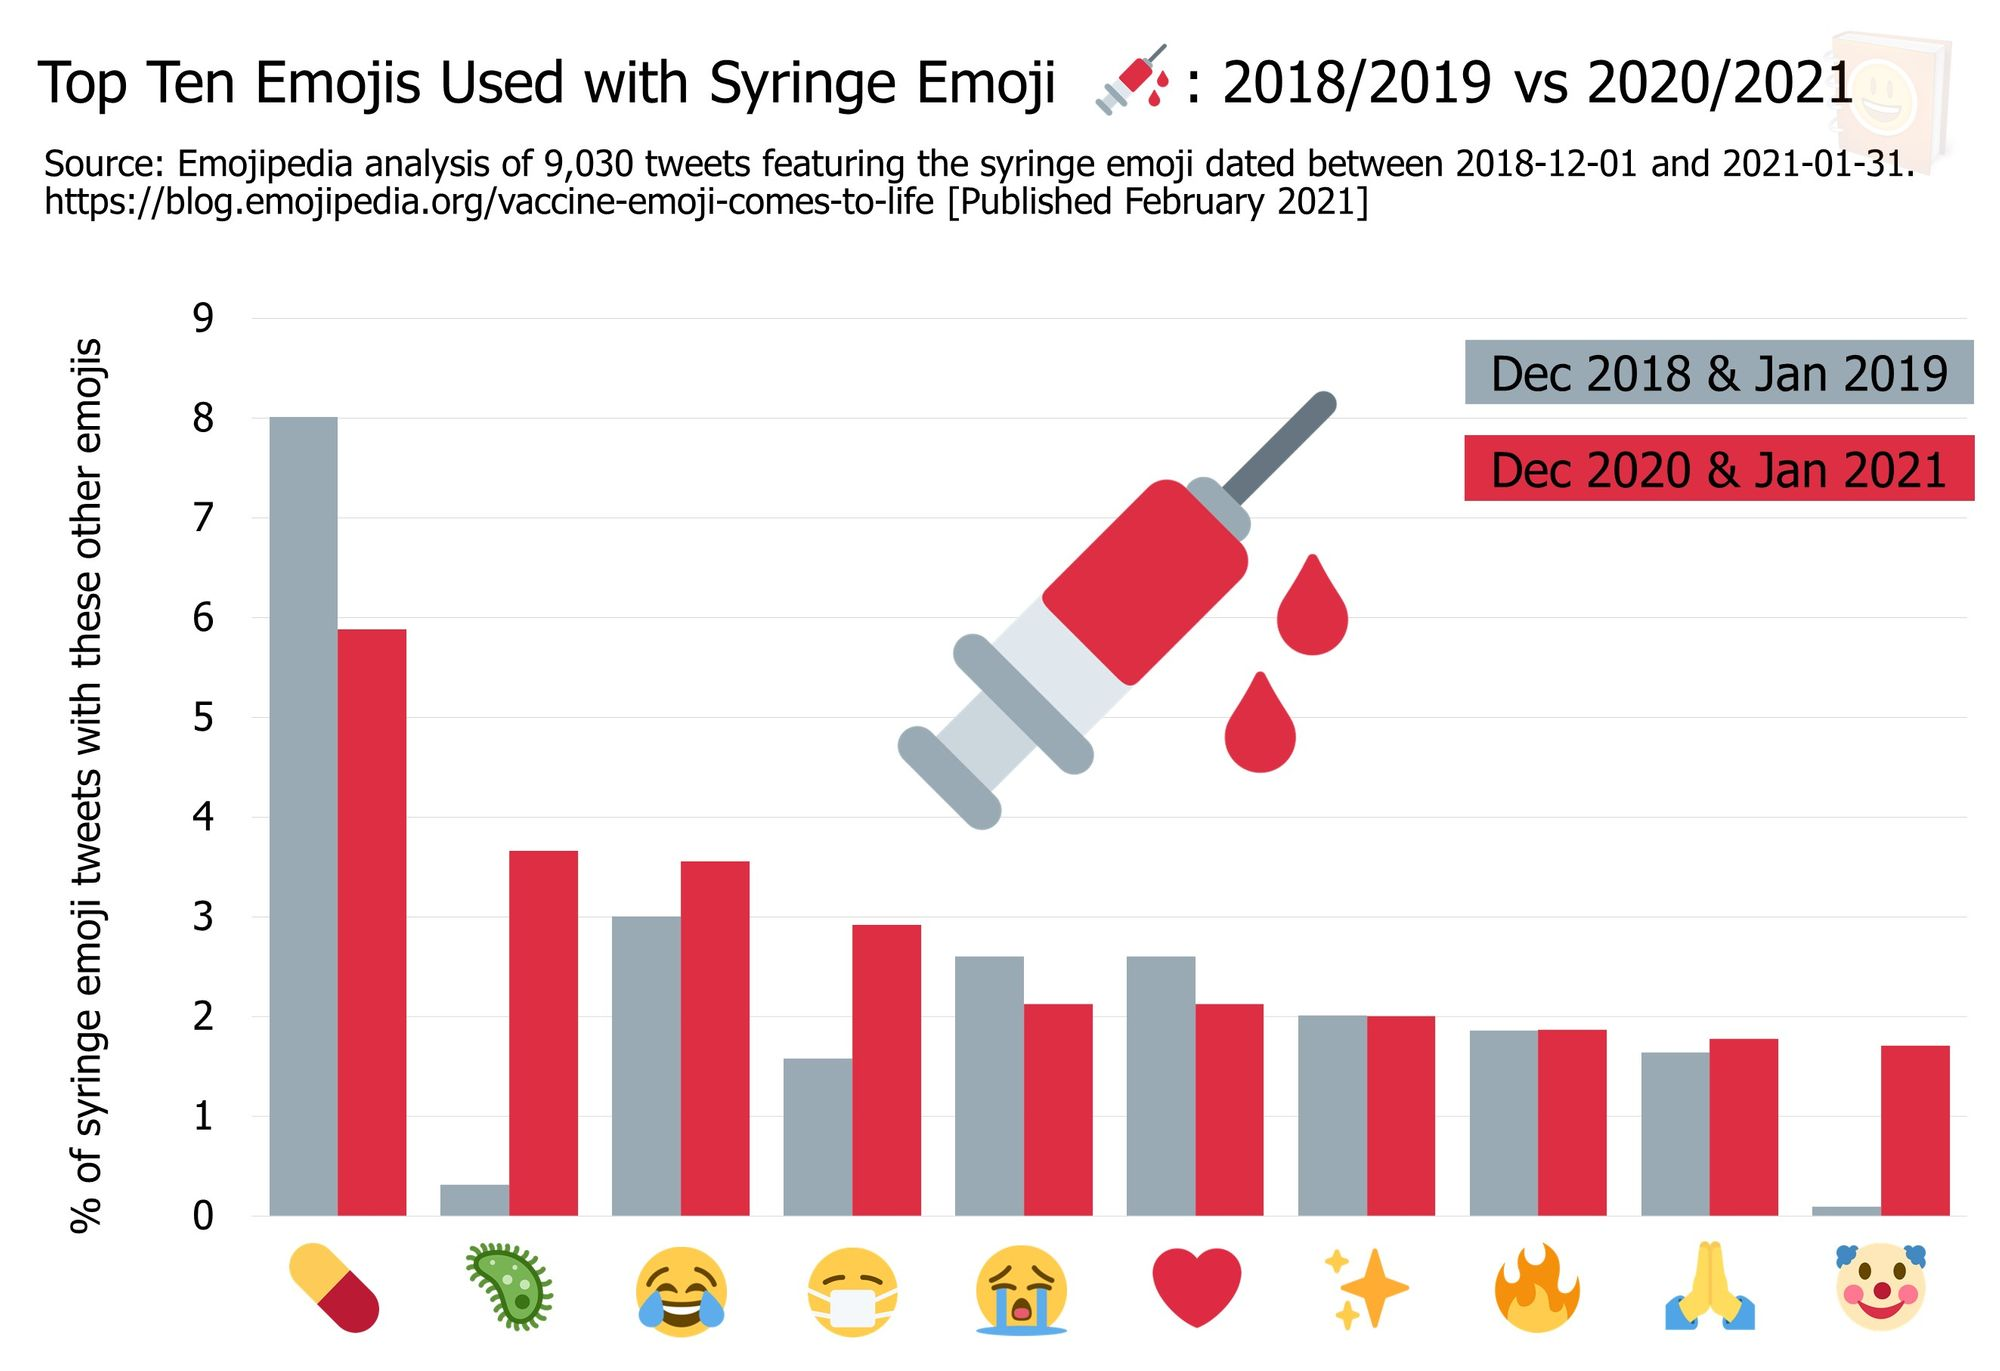 Emojipedia-Syringe-Emoji-Analysis---February-2021---Top-Ten-Emojis-Used-with-Syringe-Emoji-on-Twitter-2018-2019-vs-2020-2021